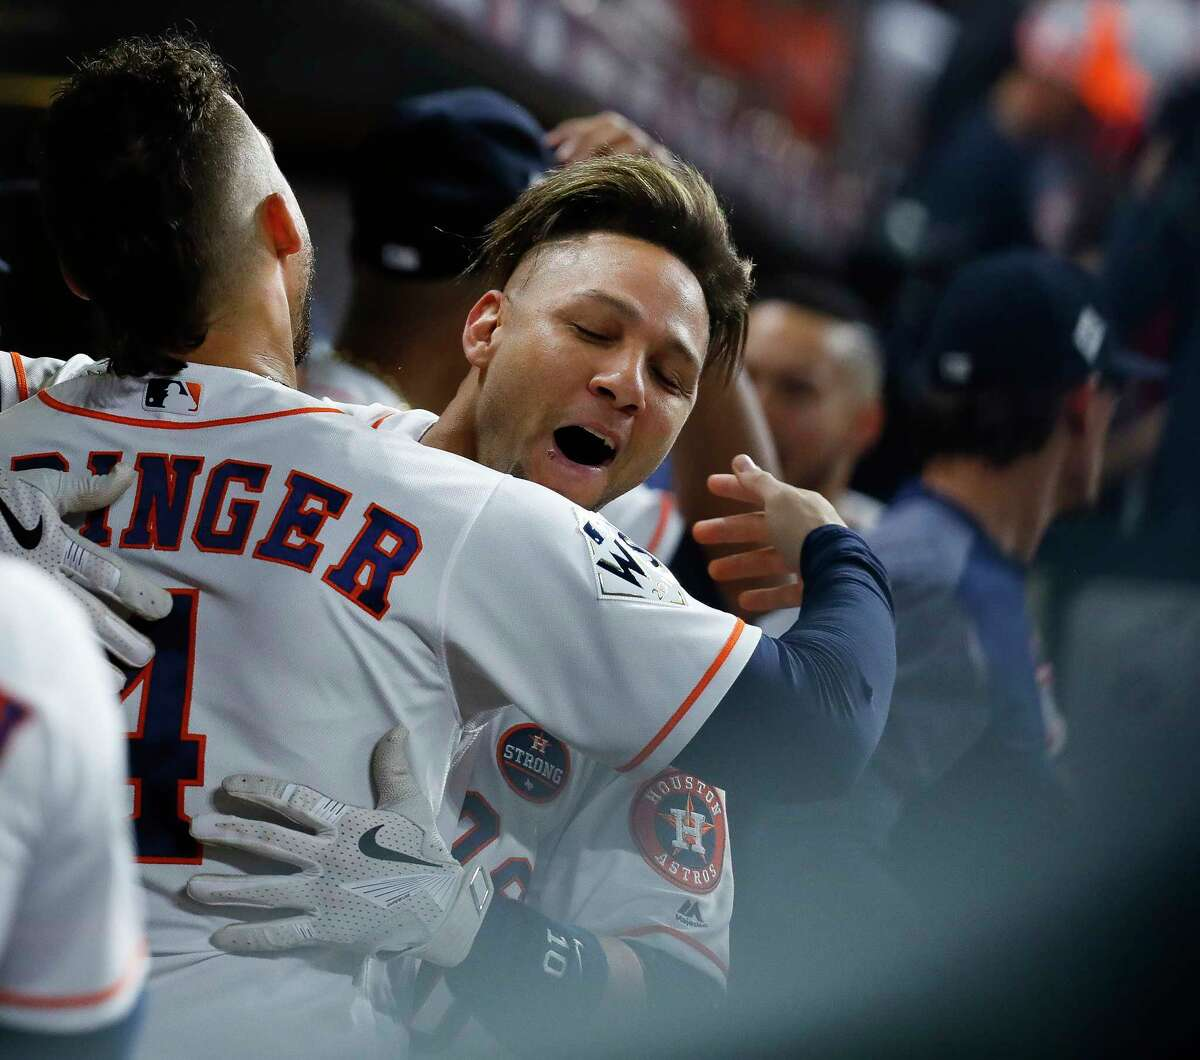 Houston Astros first baseman Yuli Gurriel (10) celebrates his solo home run in the second inning of Game 3 of the World Series at Minute Maid Park with George Springer on Friday, Oct. 27, 2017, in Houston.